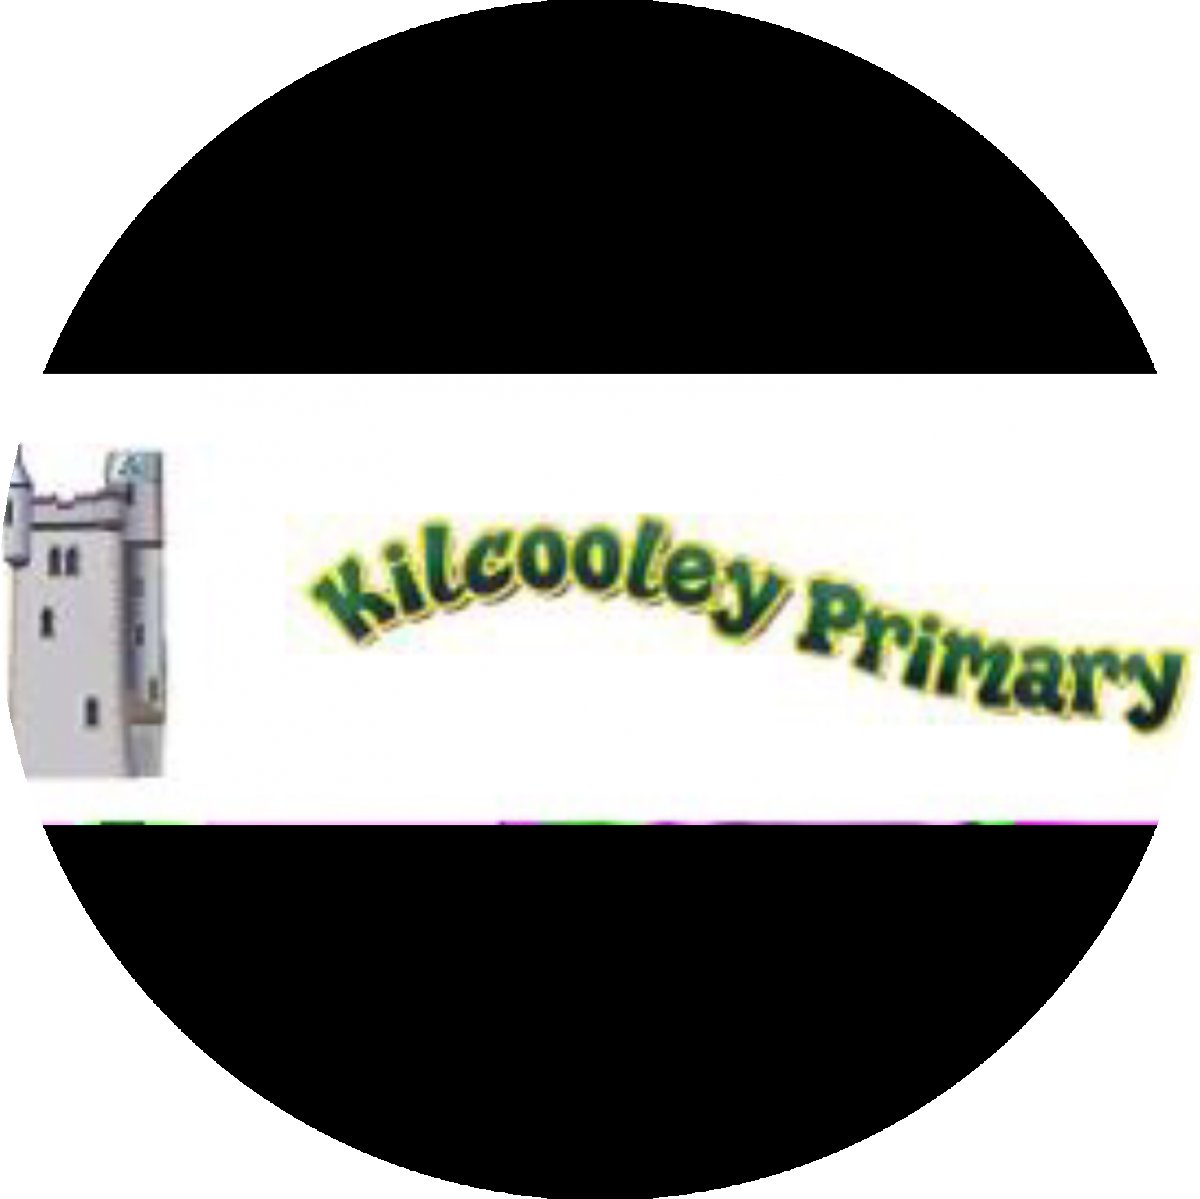 Kilcooley Primary School's profile pic